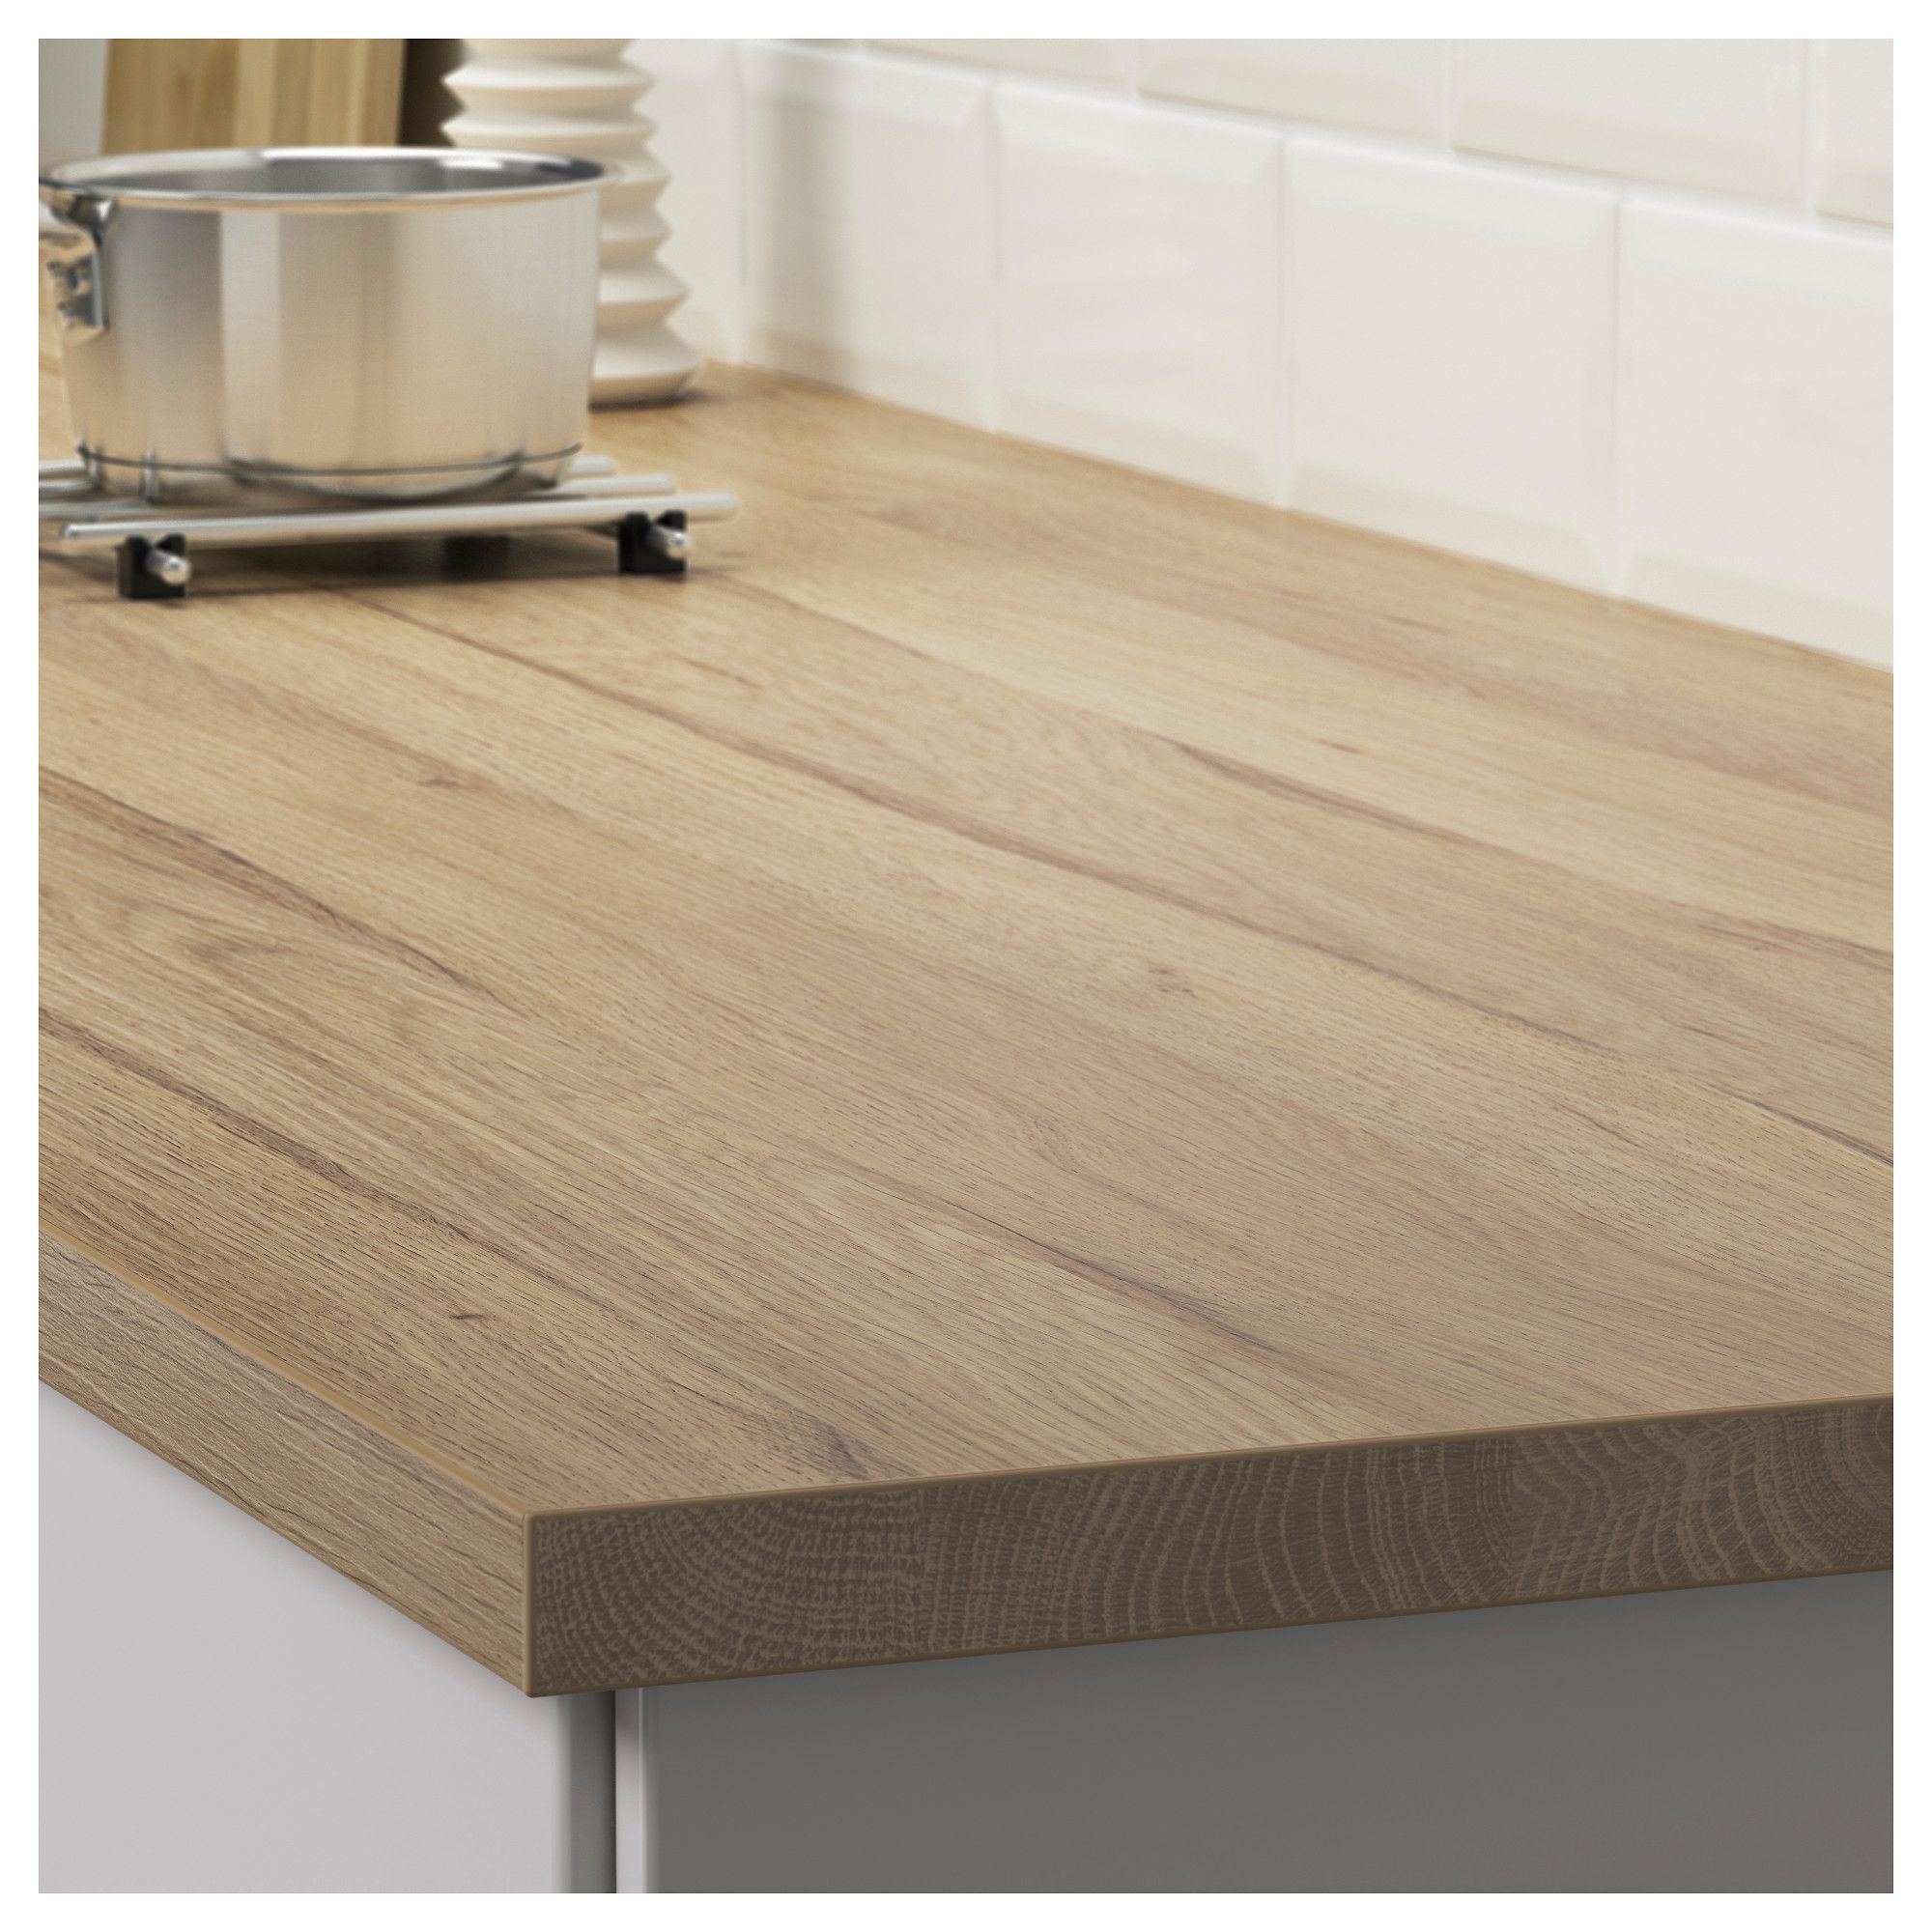 Fresh Home Furnishing Ideas And Affordable Furniture Countertops Wood Worktop Kitchen Worktop